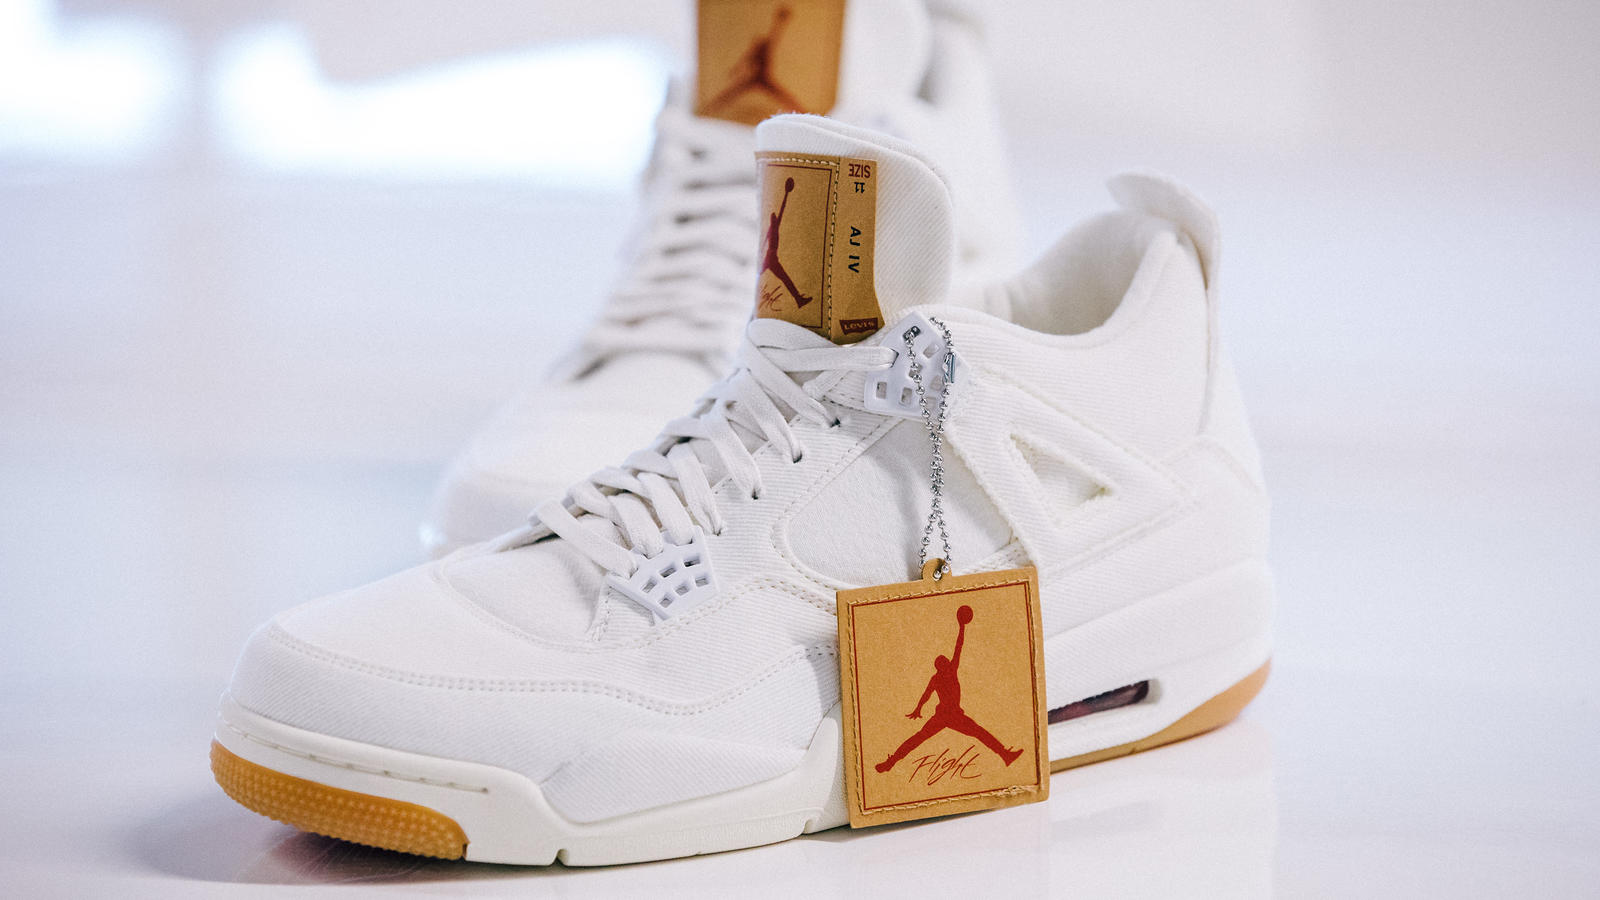 the second edition: JORDAN BRAND X LEVI'S® AIR JORDAN IV AND REVERSIBLE TRUCKER JACKET White and black 6